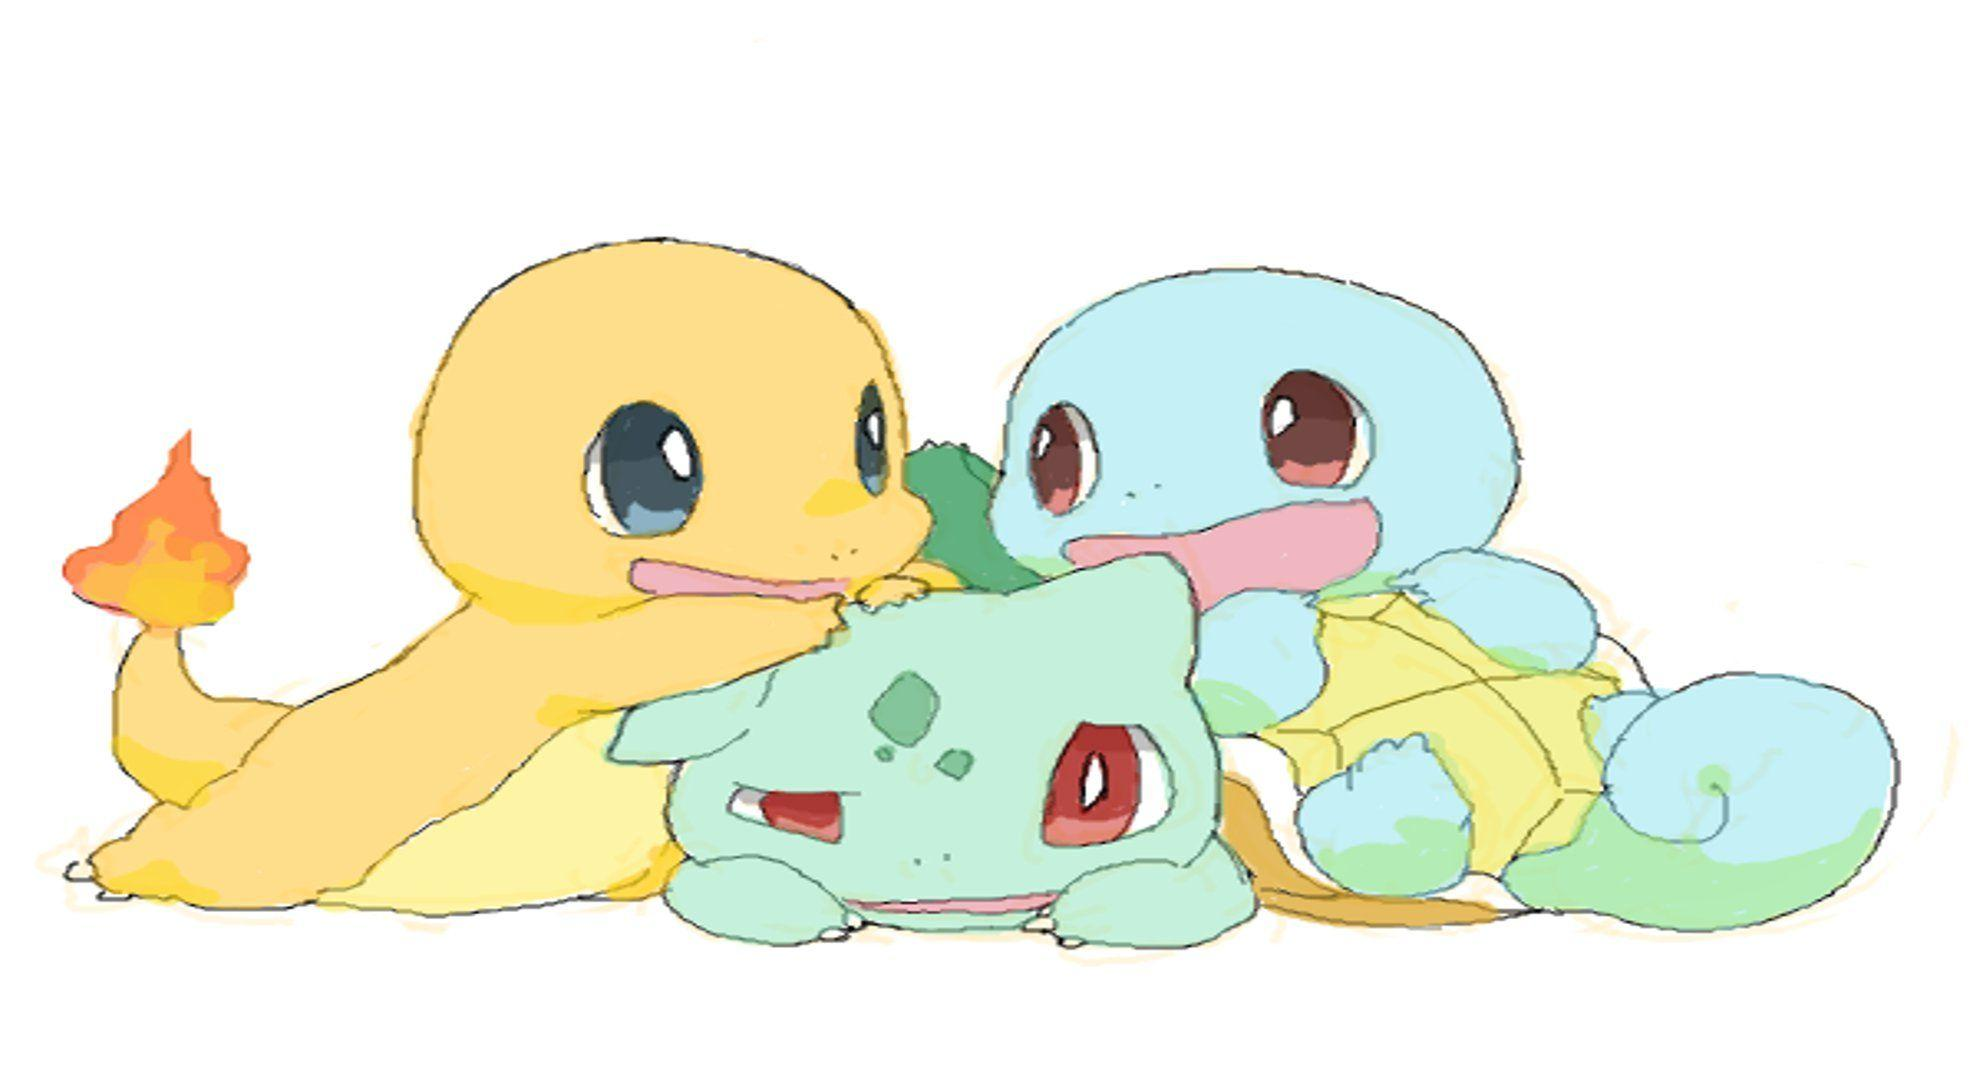 And Squirtle Bulbasaur Charmander Cute Pokemon Squirtle Wallpapers